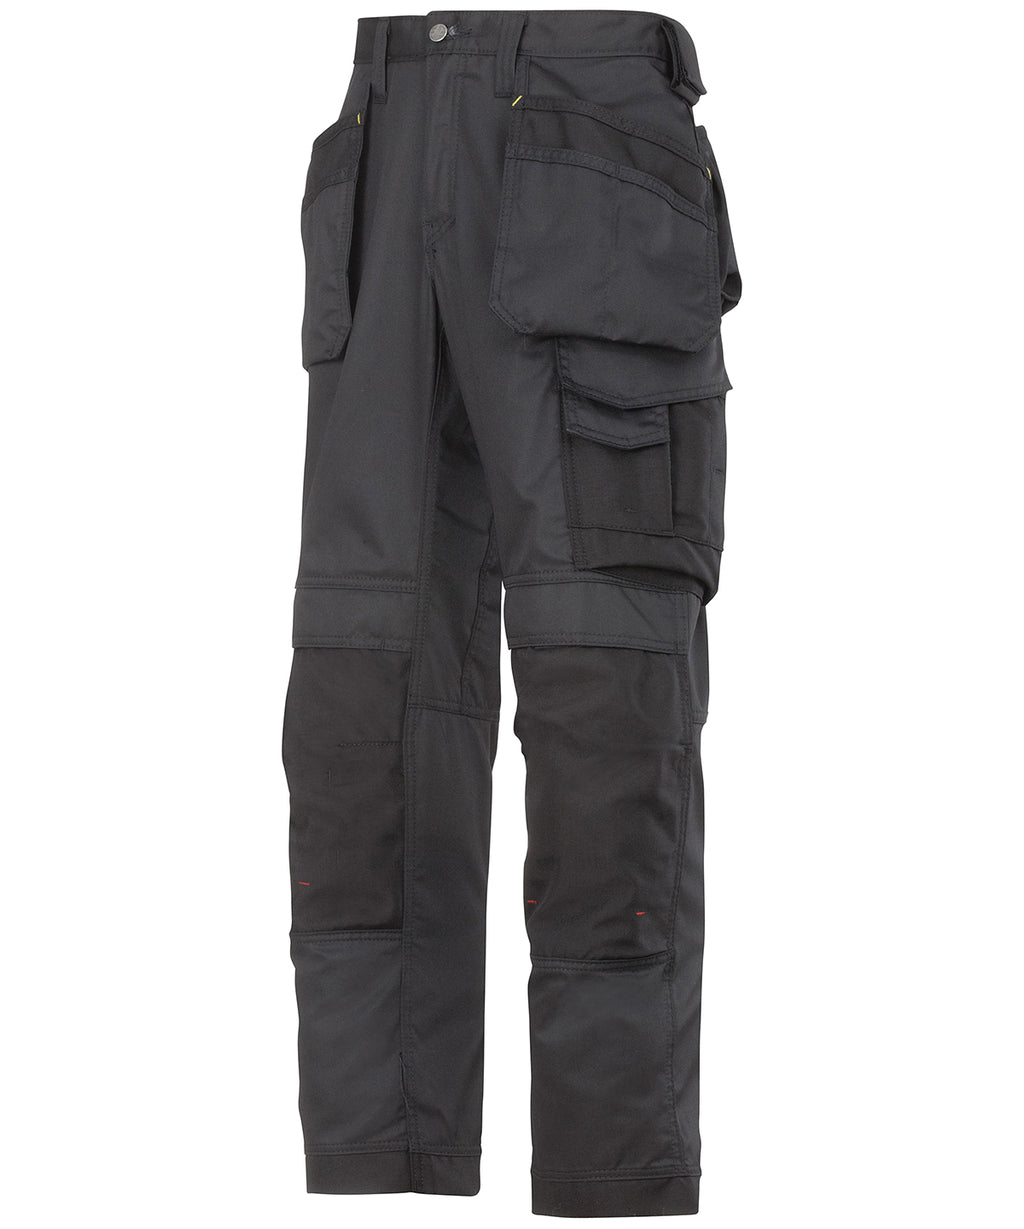 Spraww 'Military' Cargo Trousers